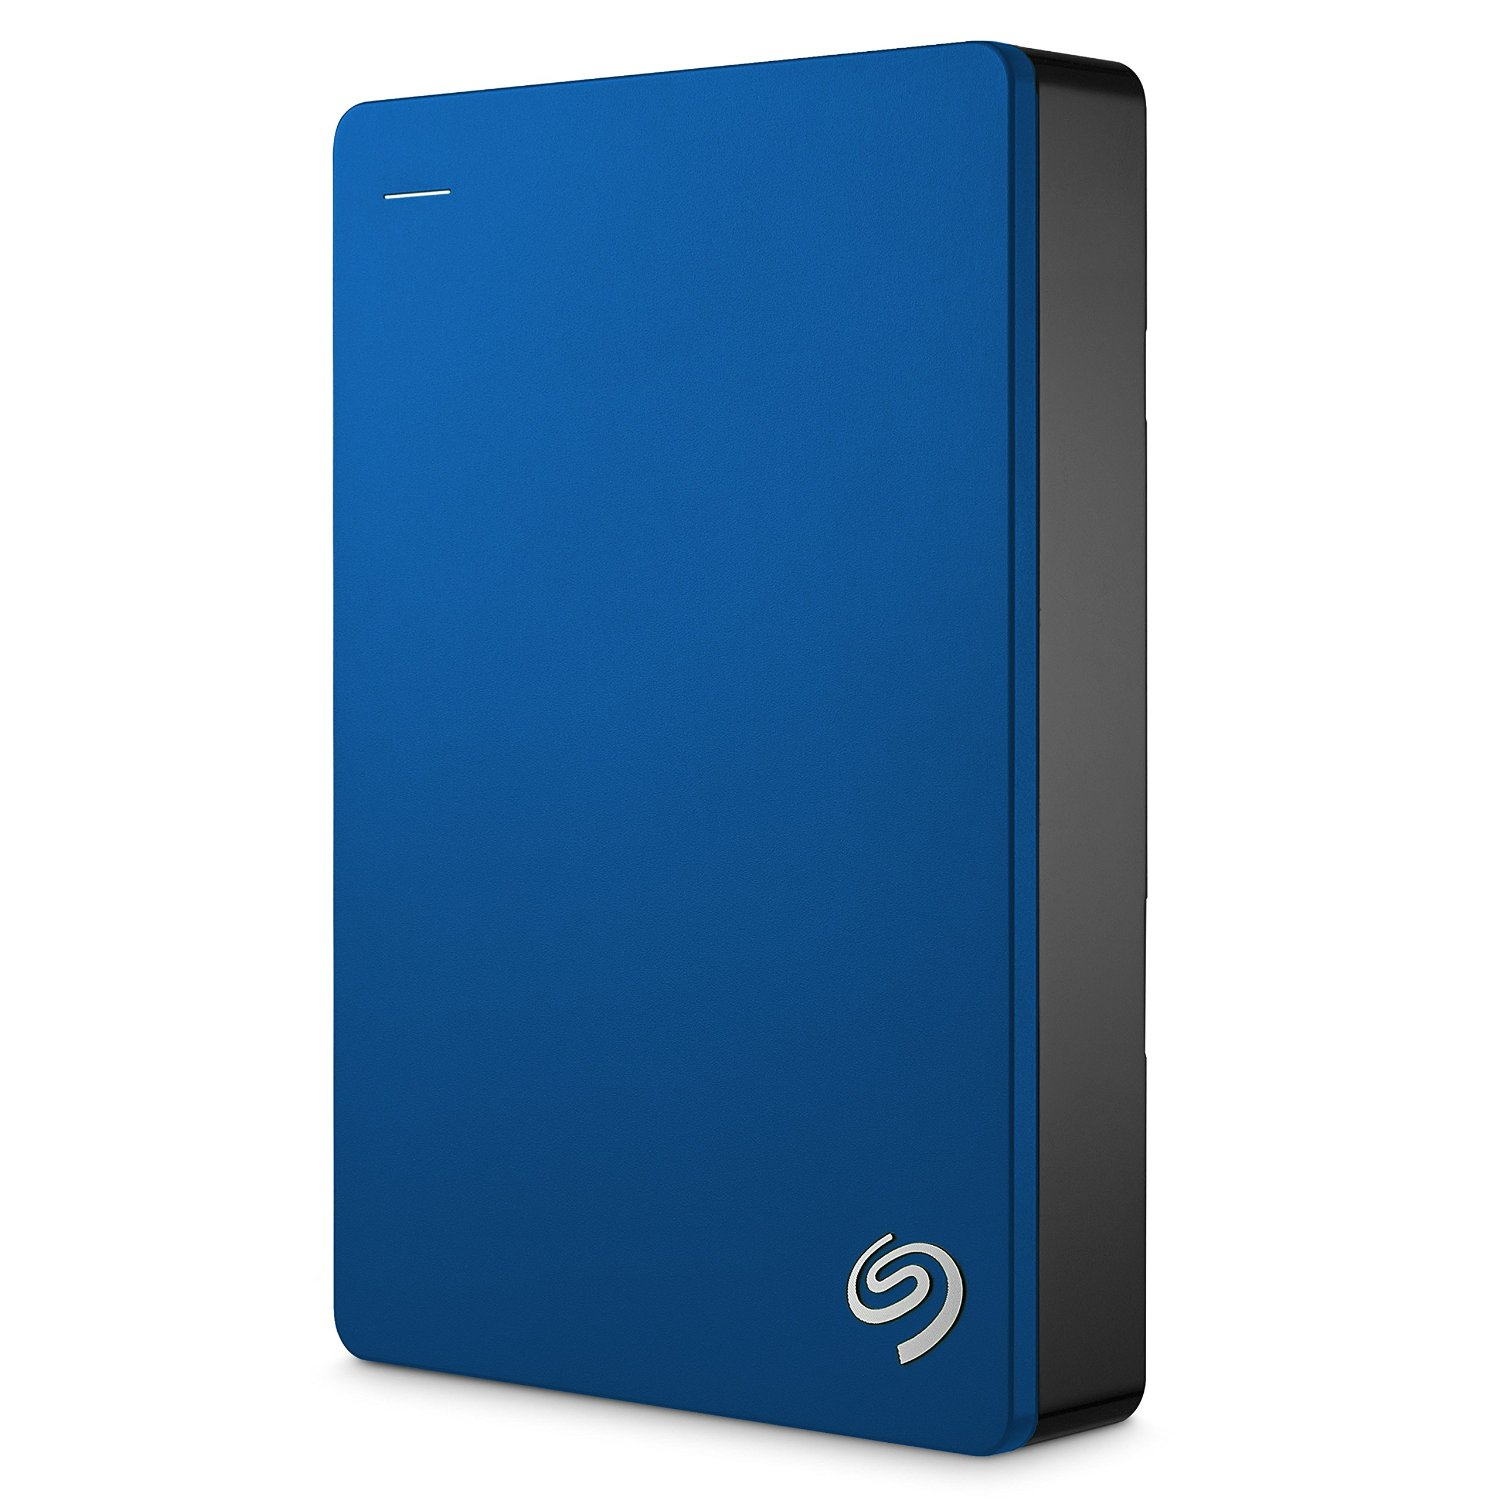 Hard Disk Extern Seagate Backup Plus Portable 2.5 4TB USB 3.0 Blue